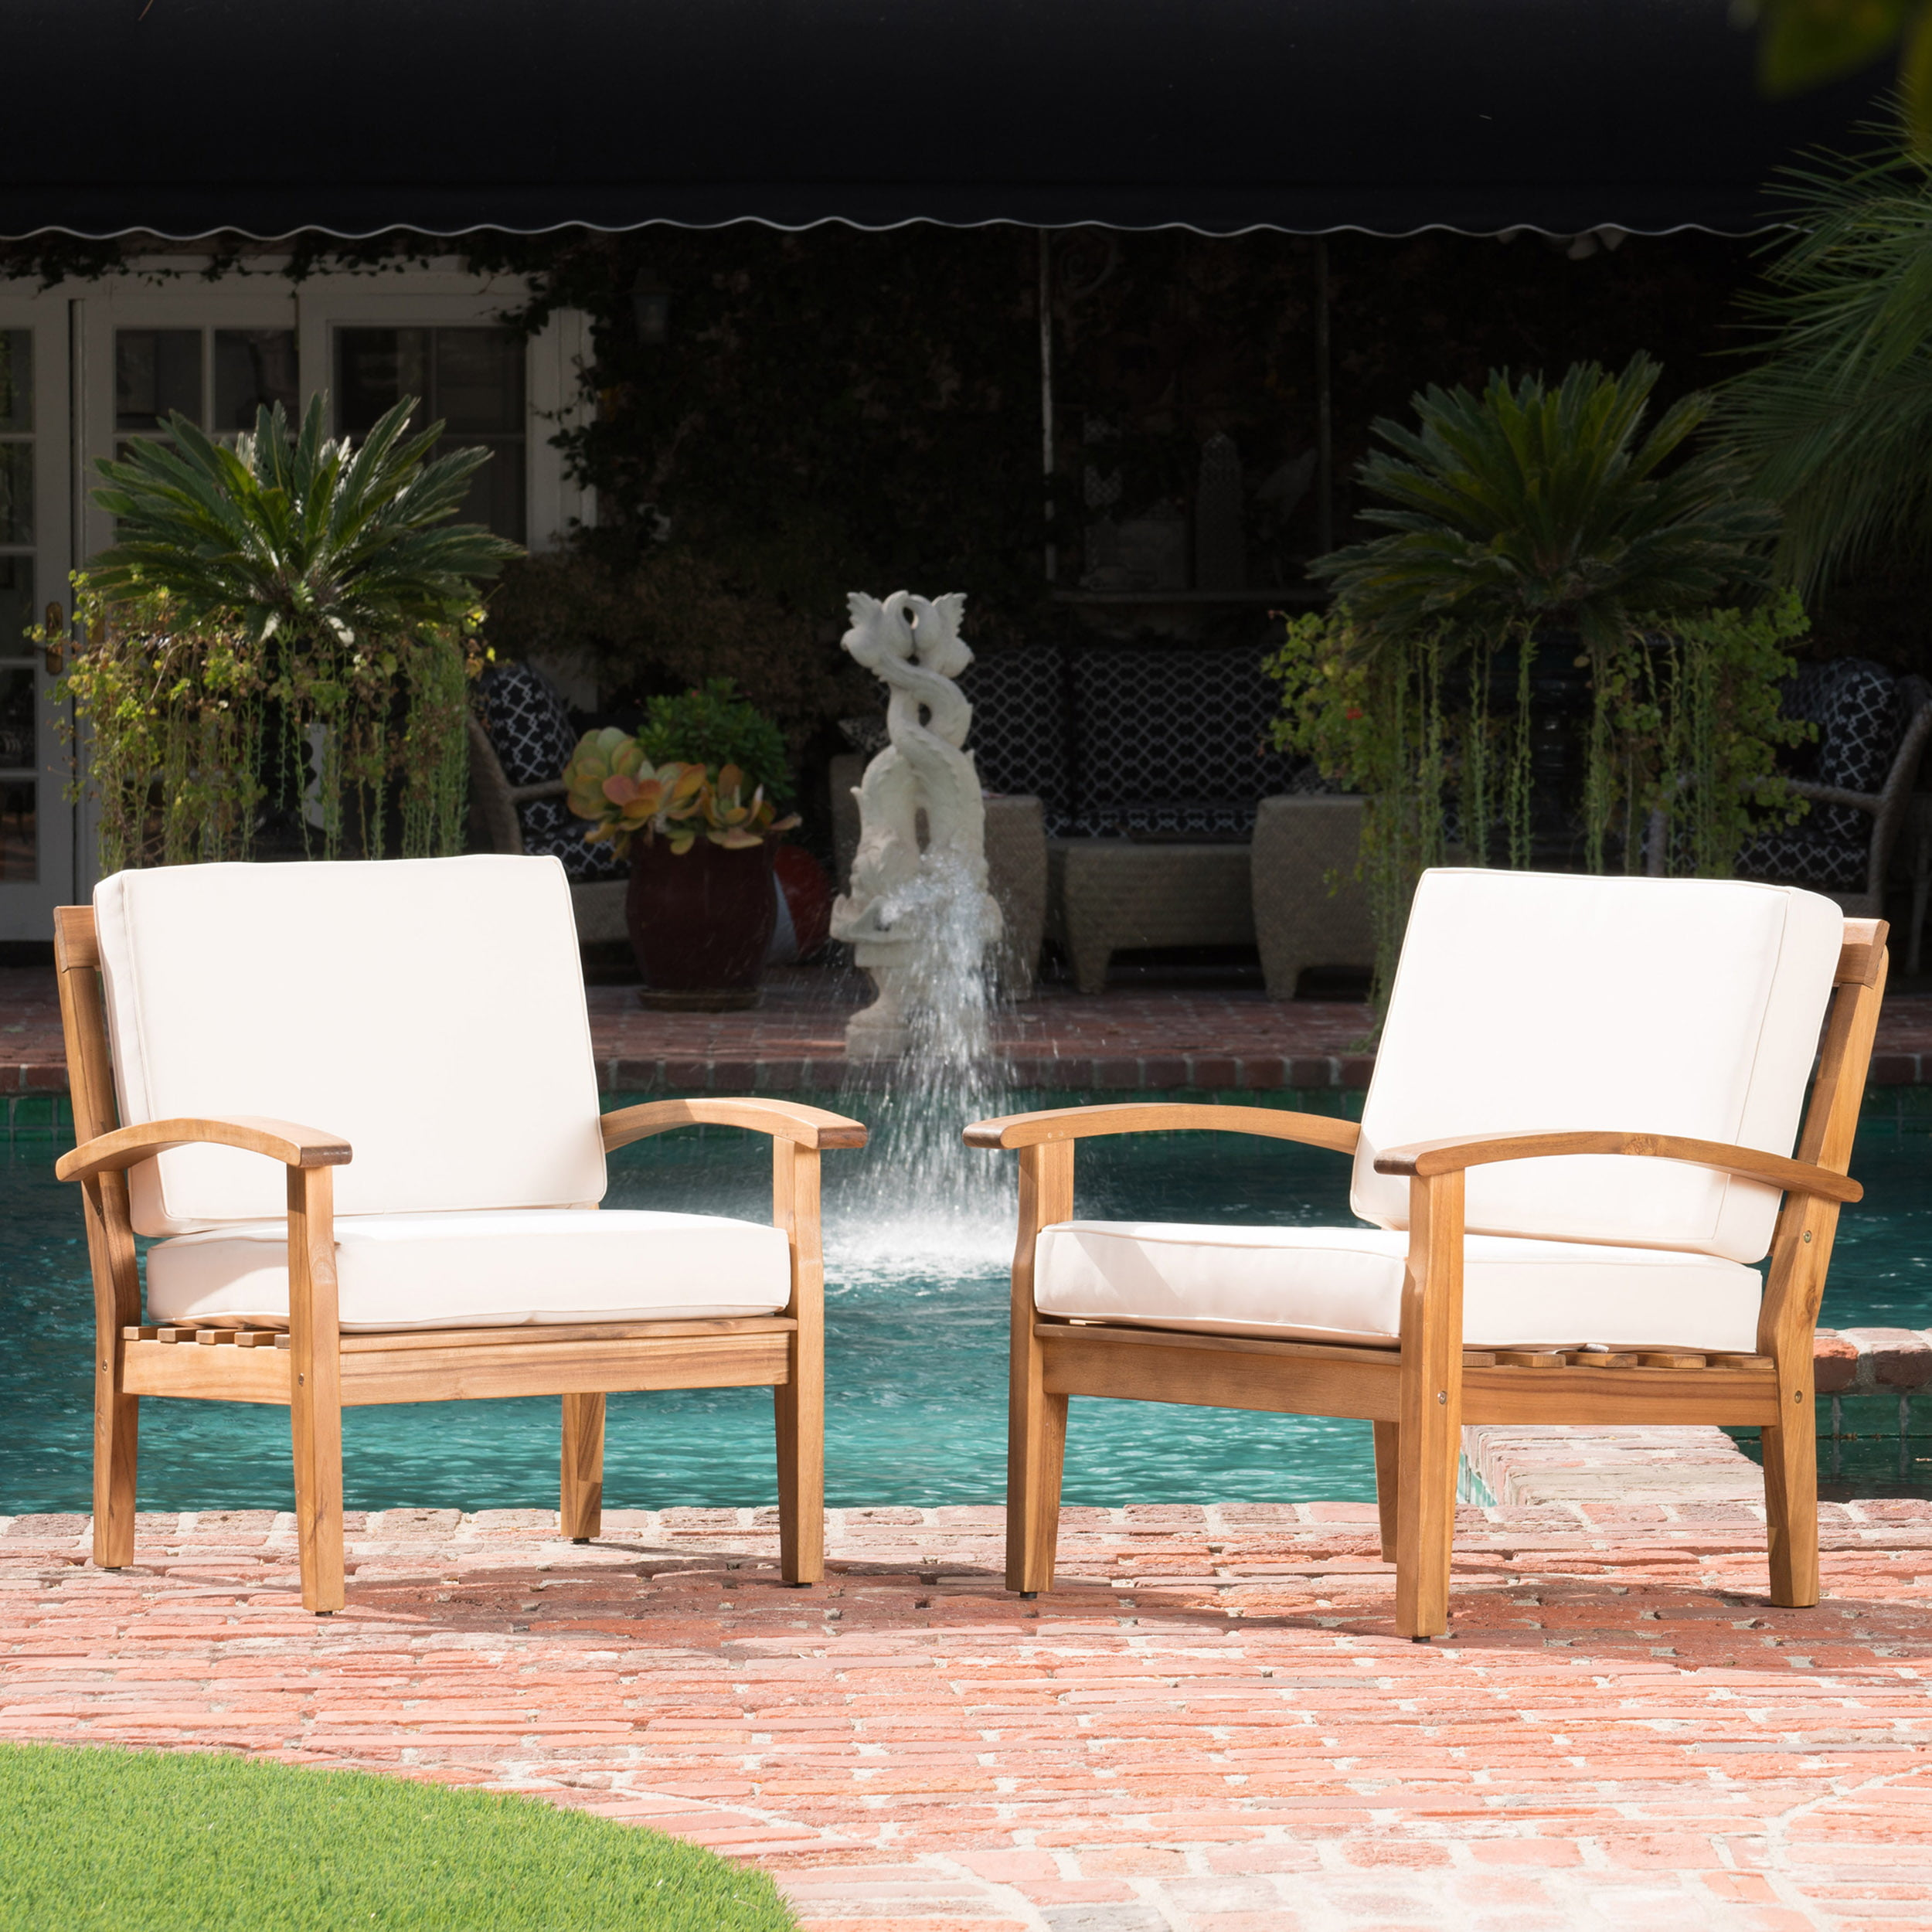 Aletta Outdoor Wooden Club Chairs with Cushions, Set of 2, Teak Finish, Beige by Noble House